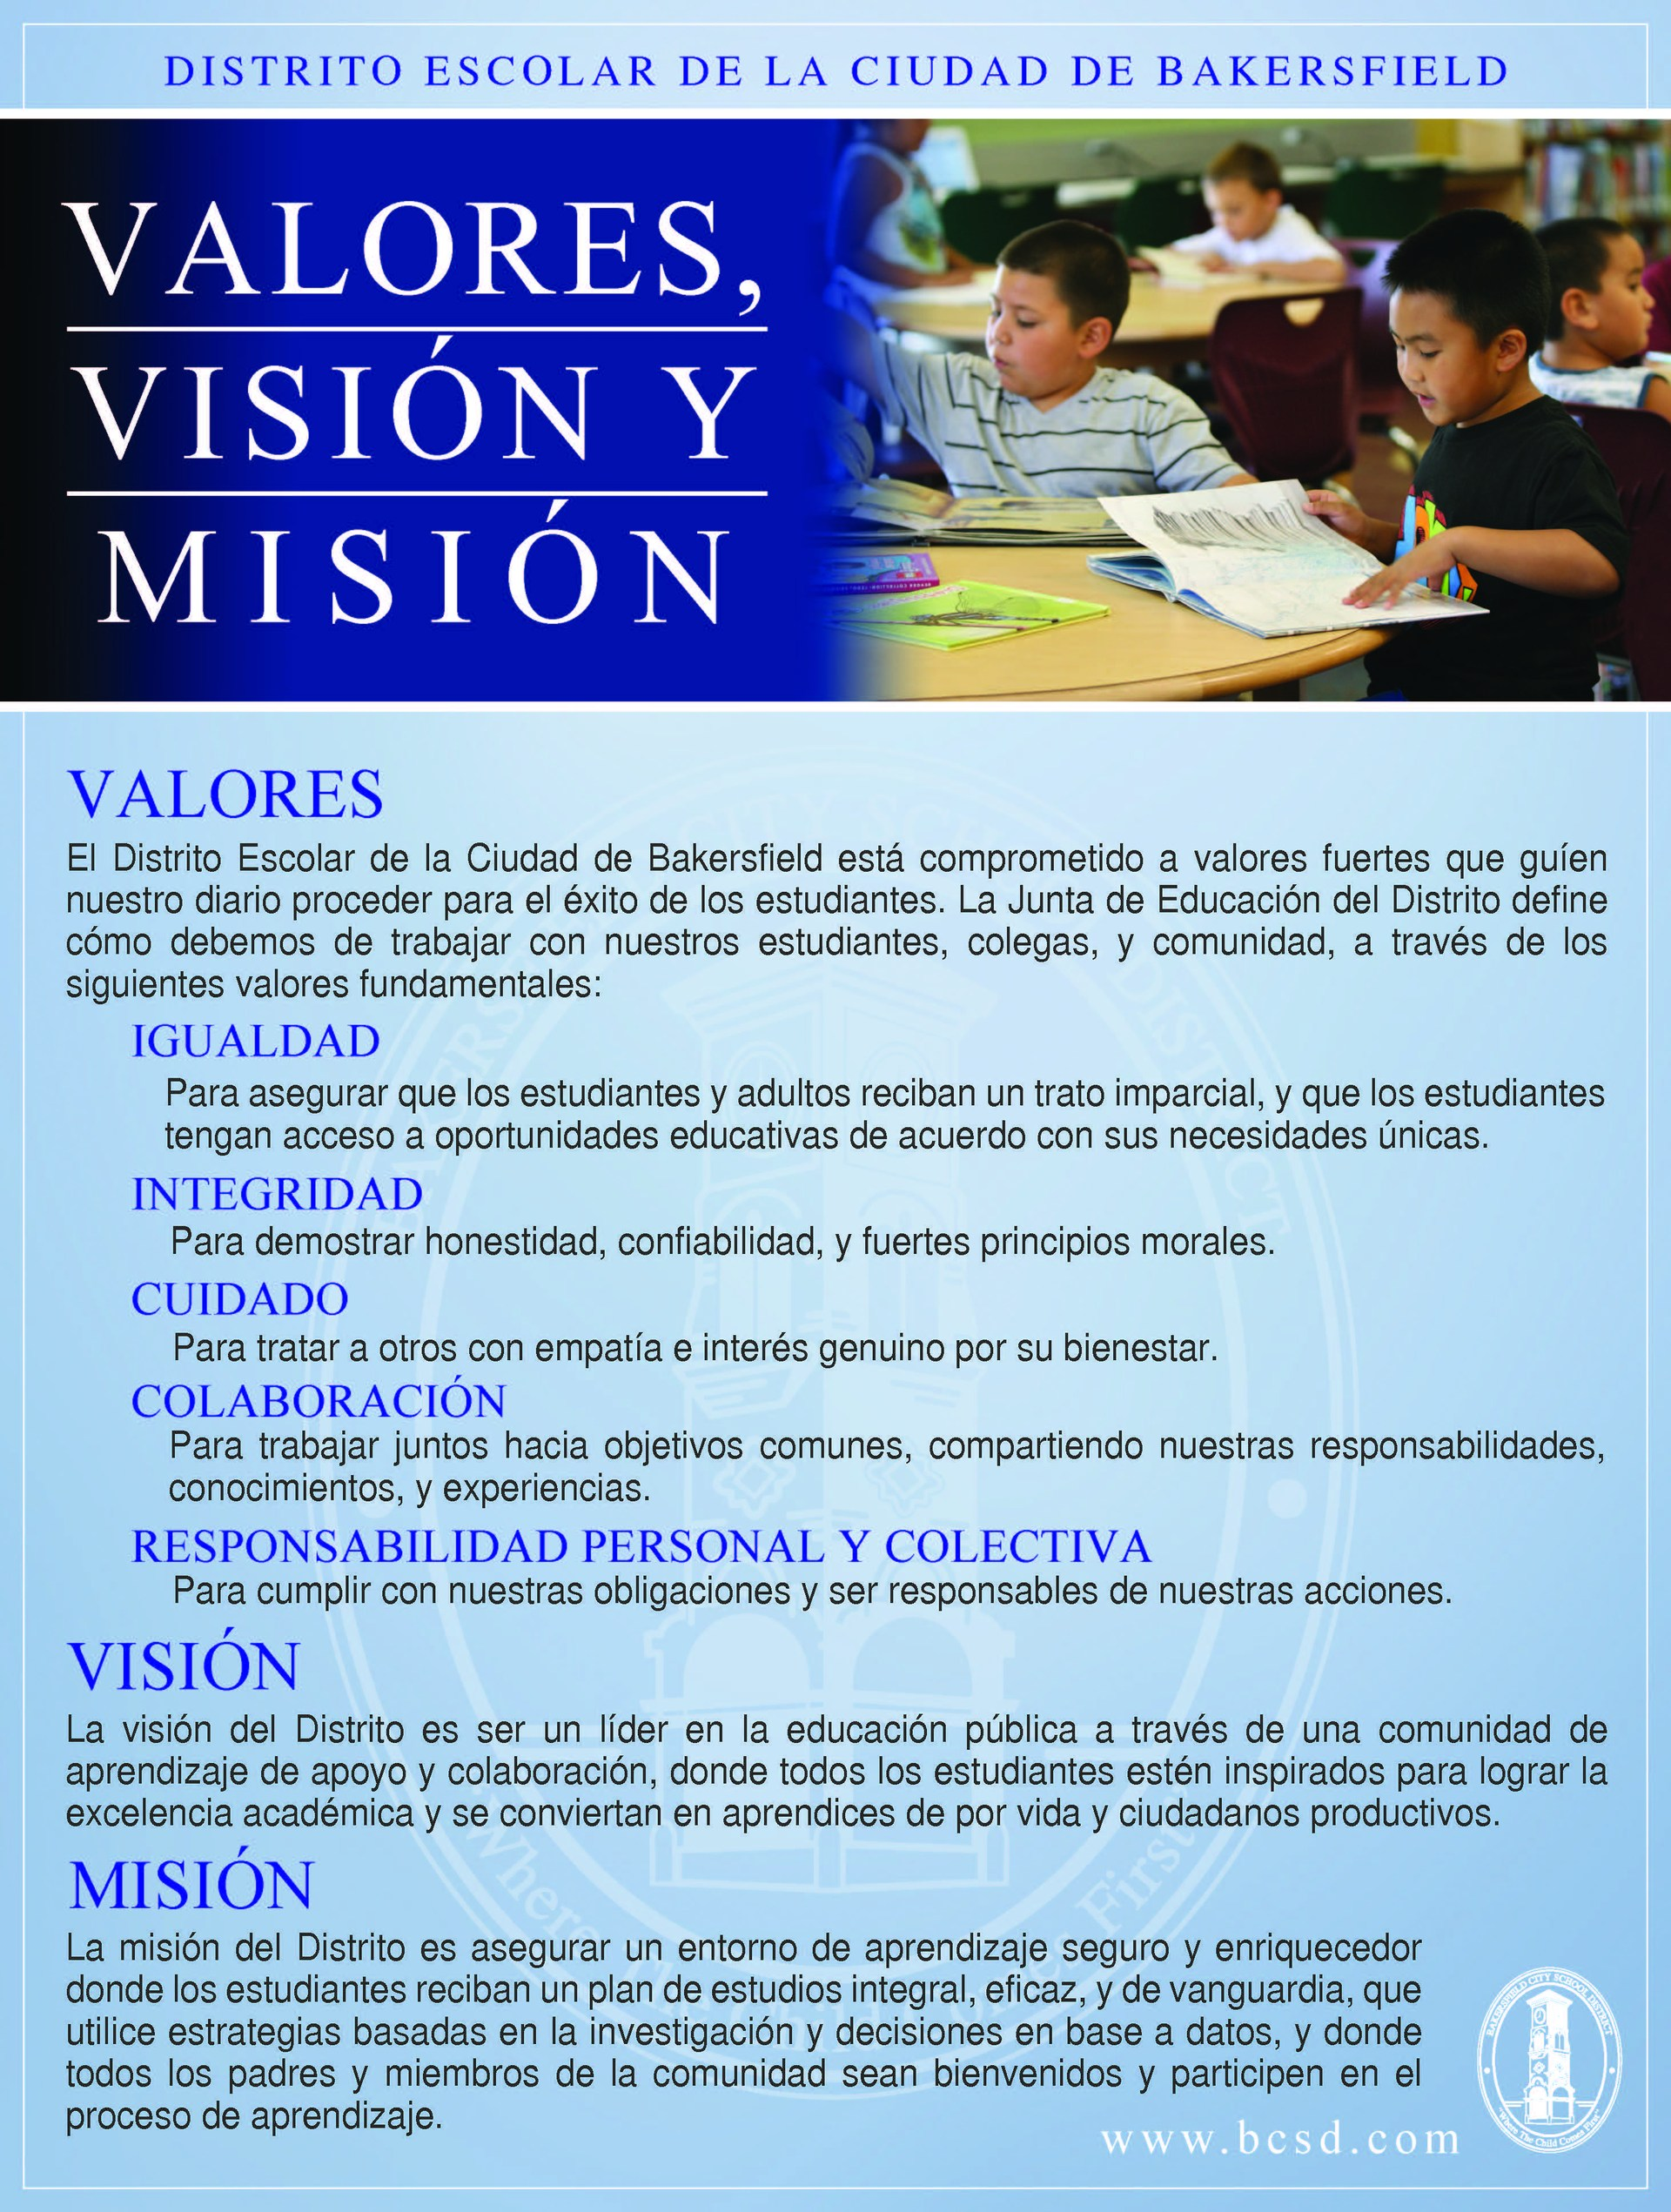 BCSD's Mission and Vision in Spanish